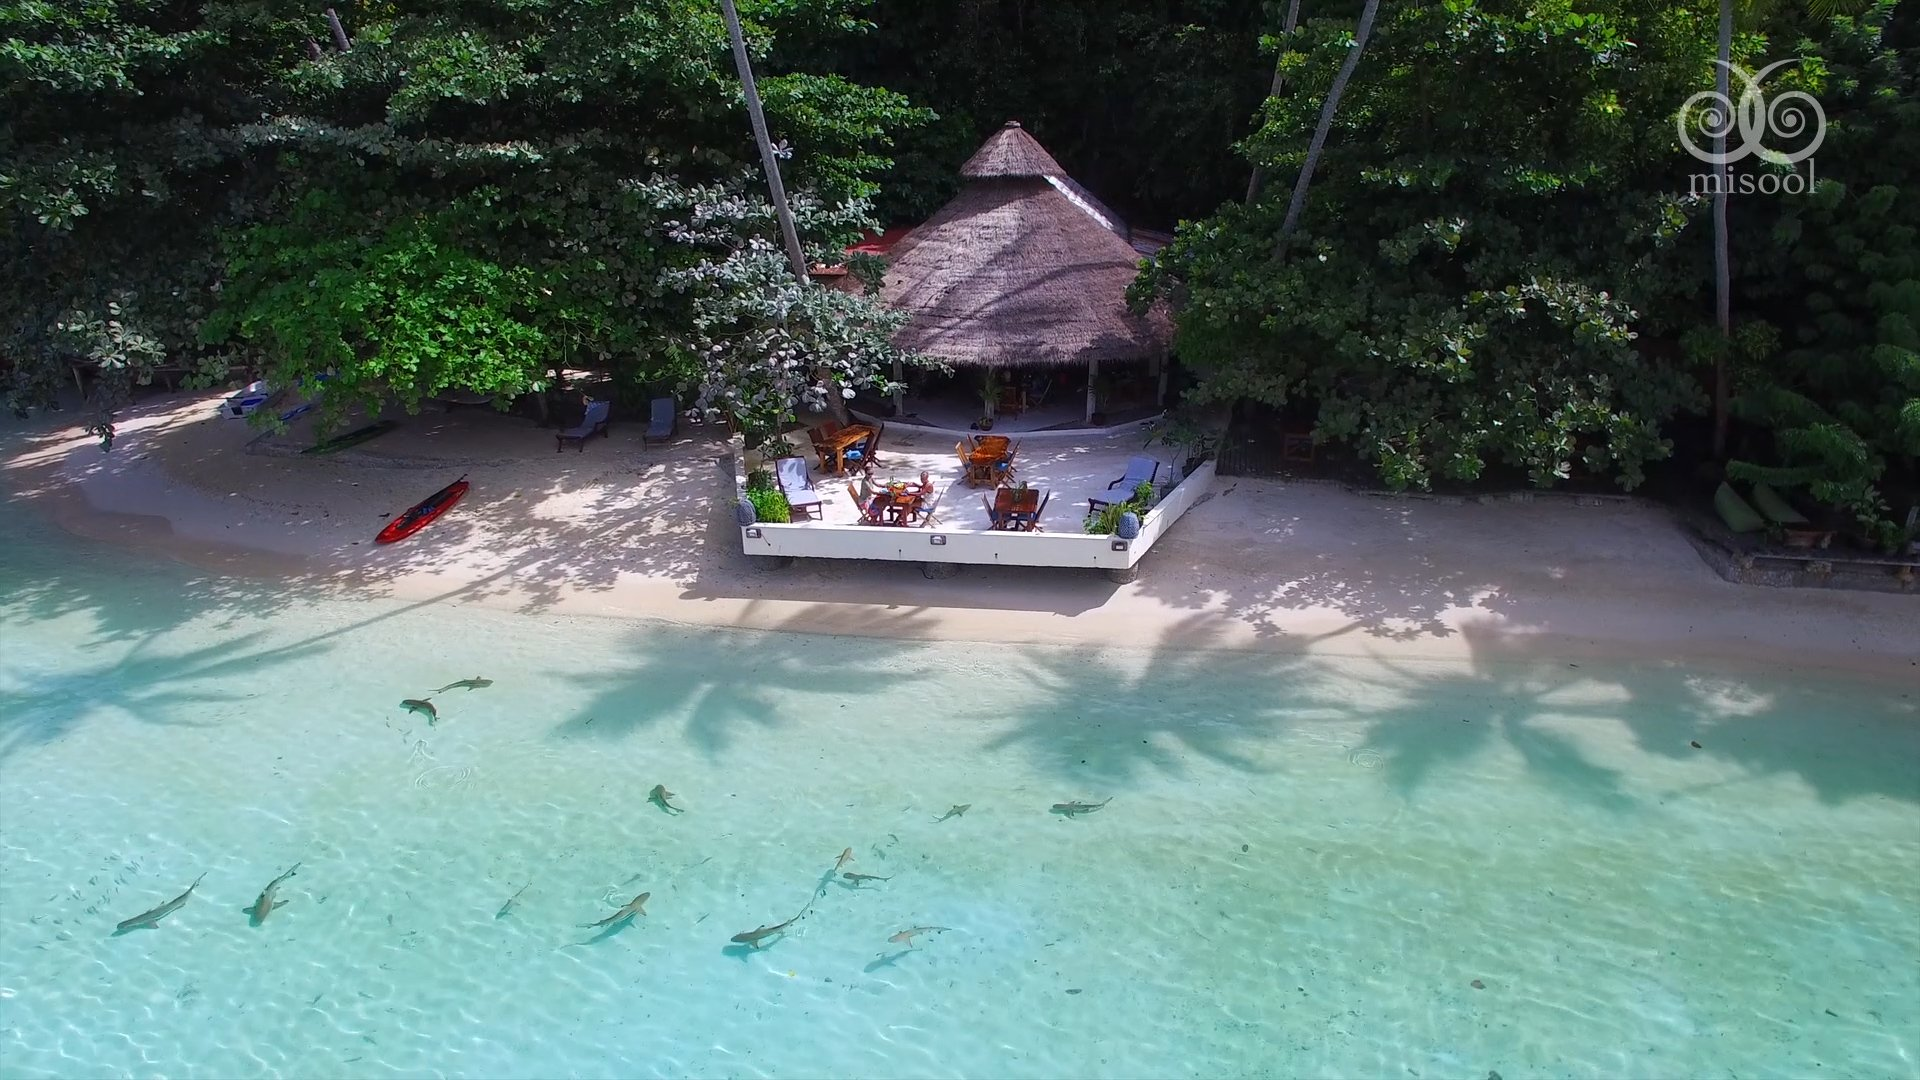 aerial view of misool resort balcony and baby sharks